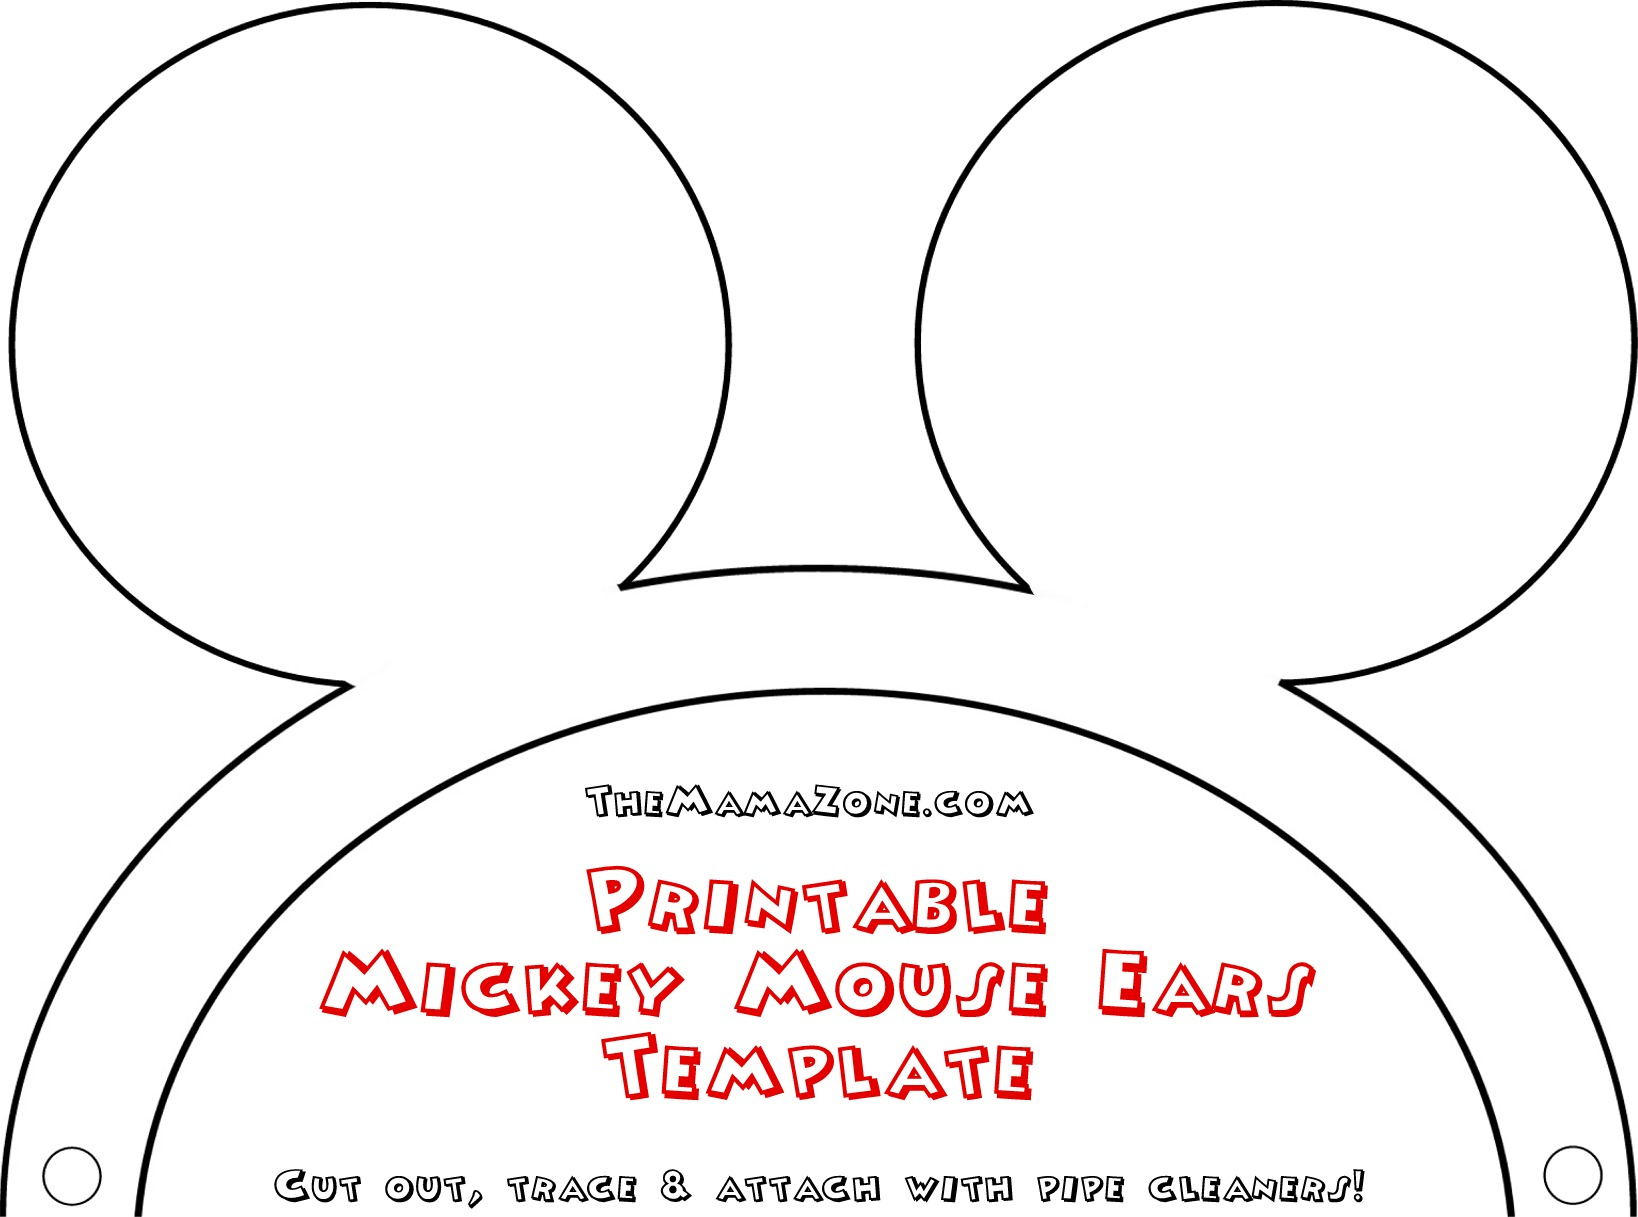 Free Mickey Mouse Ears Template | The Mama Zone - Free Printable Mickey Mouse Template